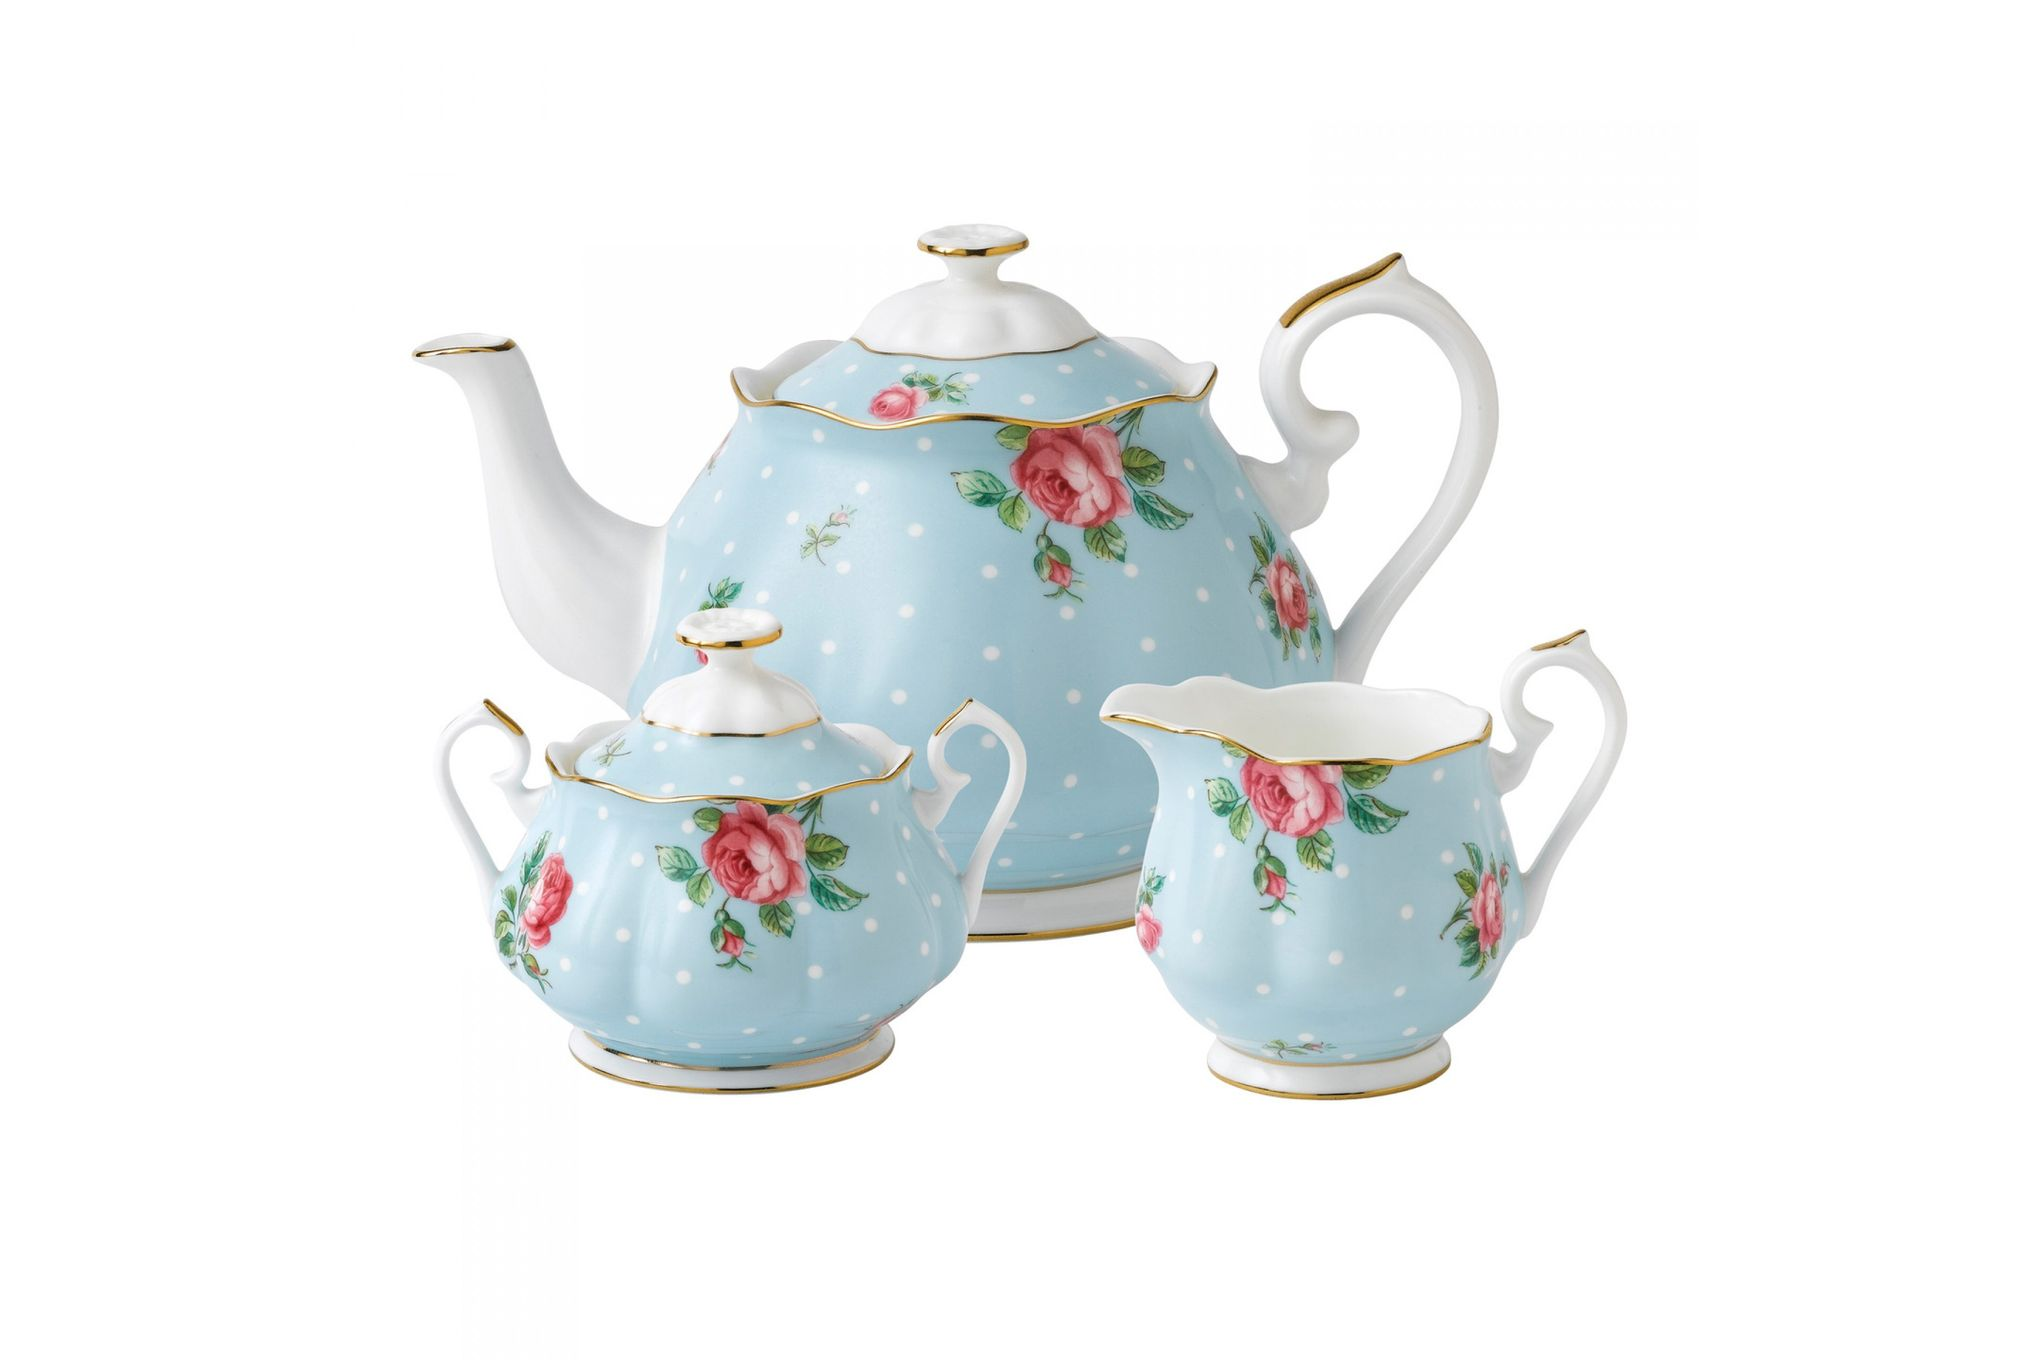 Royal Albert Polka Blue 3 Piece Tea set Teapot, Sugar, Creamer thumb 1